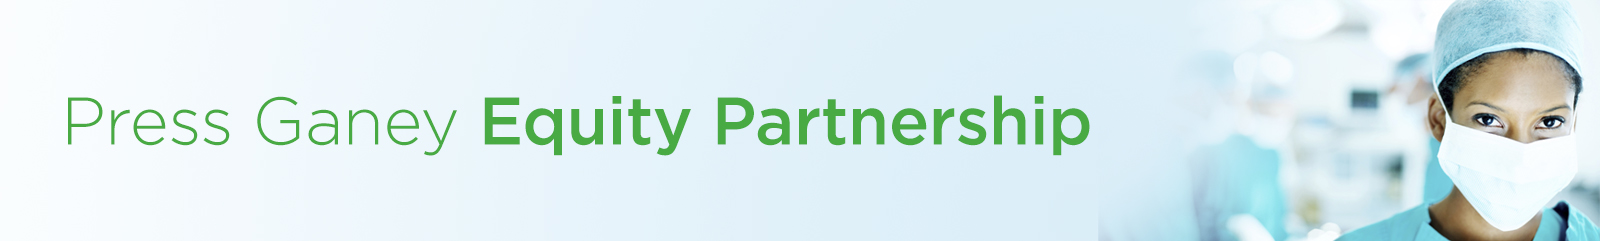 Press Ganey Equity Partnership and Commit to Zero Inequity in Care